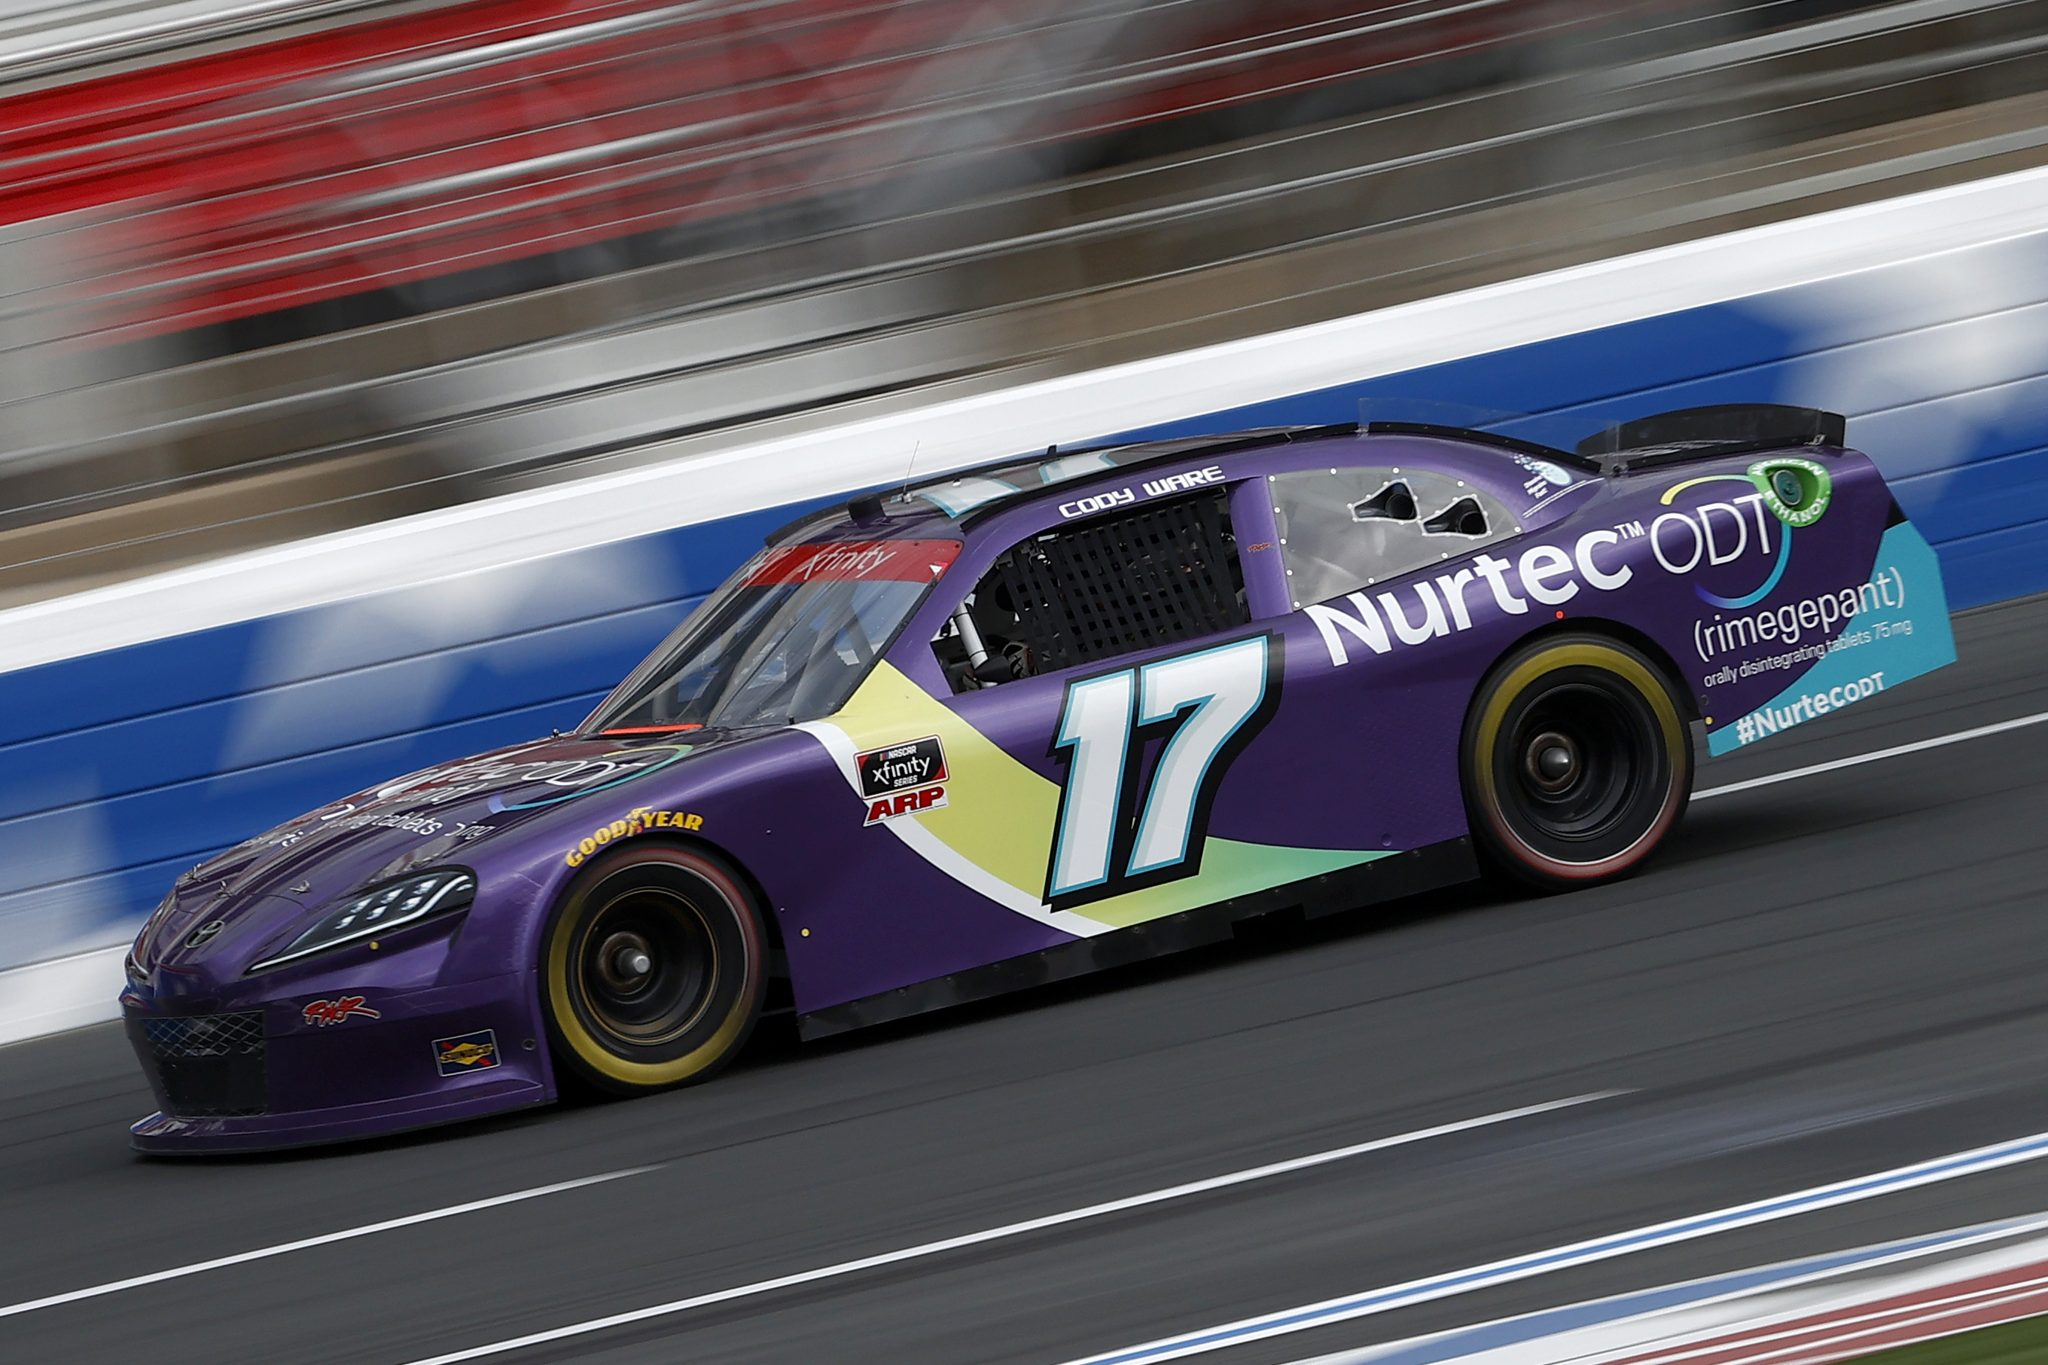 CONCORD, NORTH CAROLINA - MAY 28: Cody Ware, driver of the #17 Nurtec ODT Ford, drives during practice for the NASCAR Xfinity Series Alsco Uniforms 300 at Charlotte Motor Speedway on May 28, 2021 in Concord, North Carolina. (Photo by Maddie Meyer/Getty Images)   Getty Images